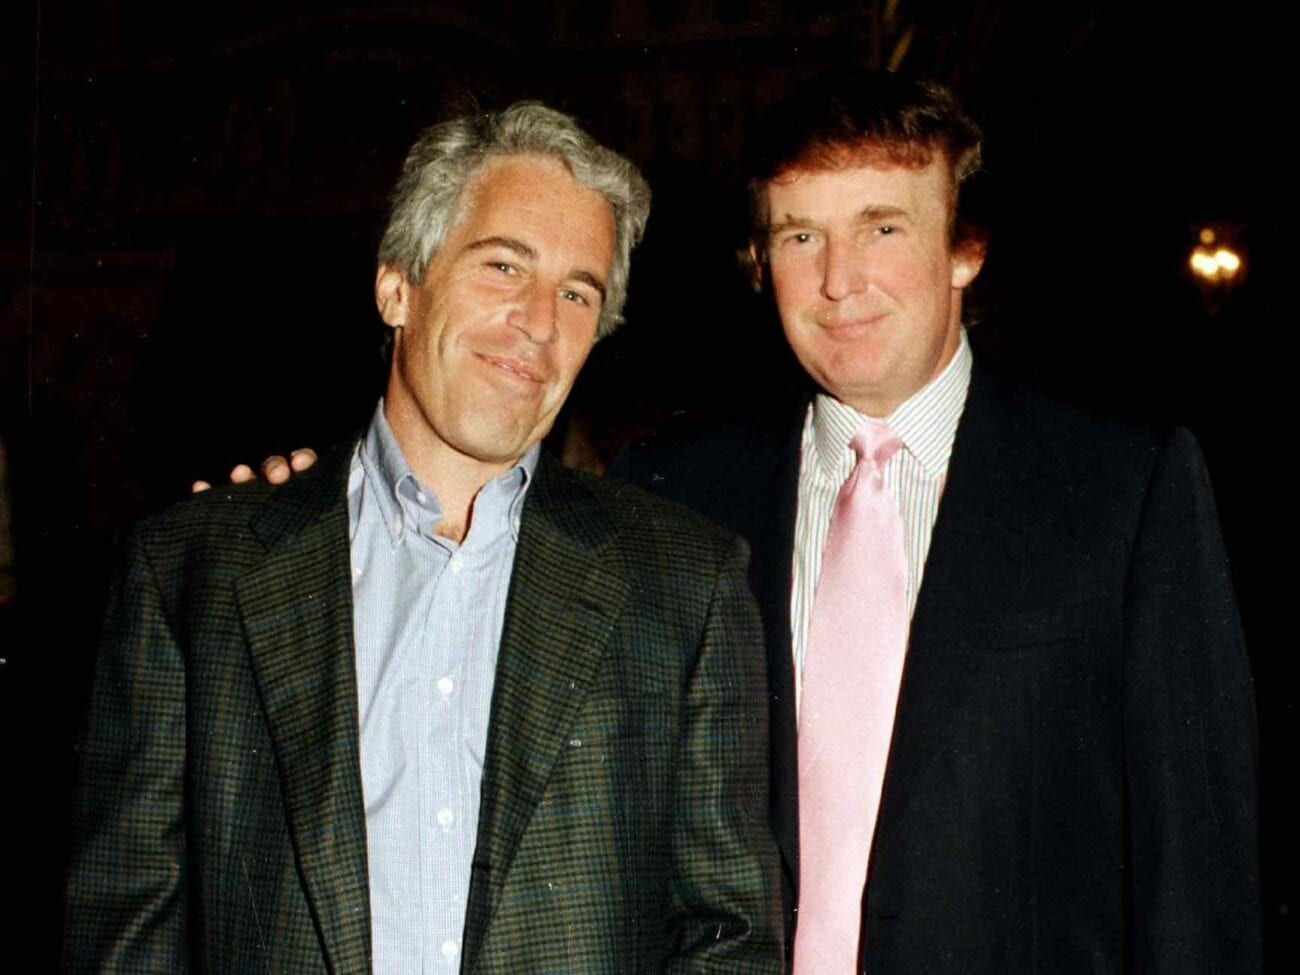 An Axios interview with Donald Trump went viral yesterday. Is Jeffrey Epstein's death suspicious? Let's look at what Trump has to say.